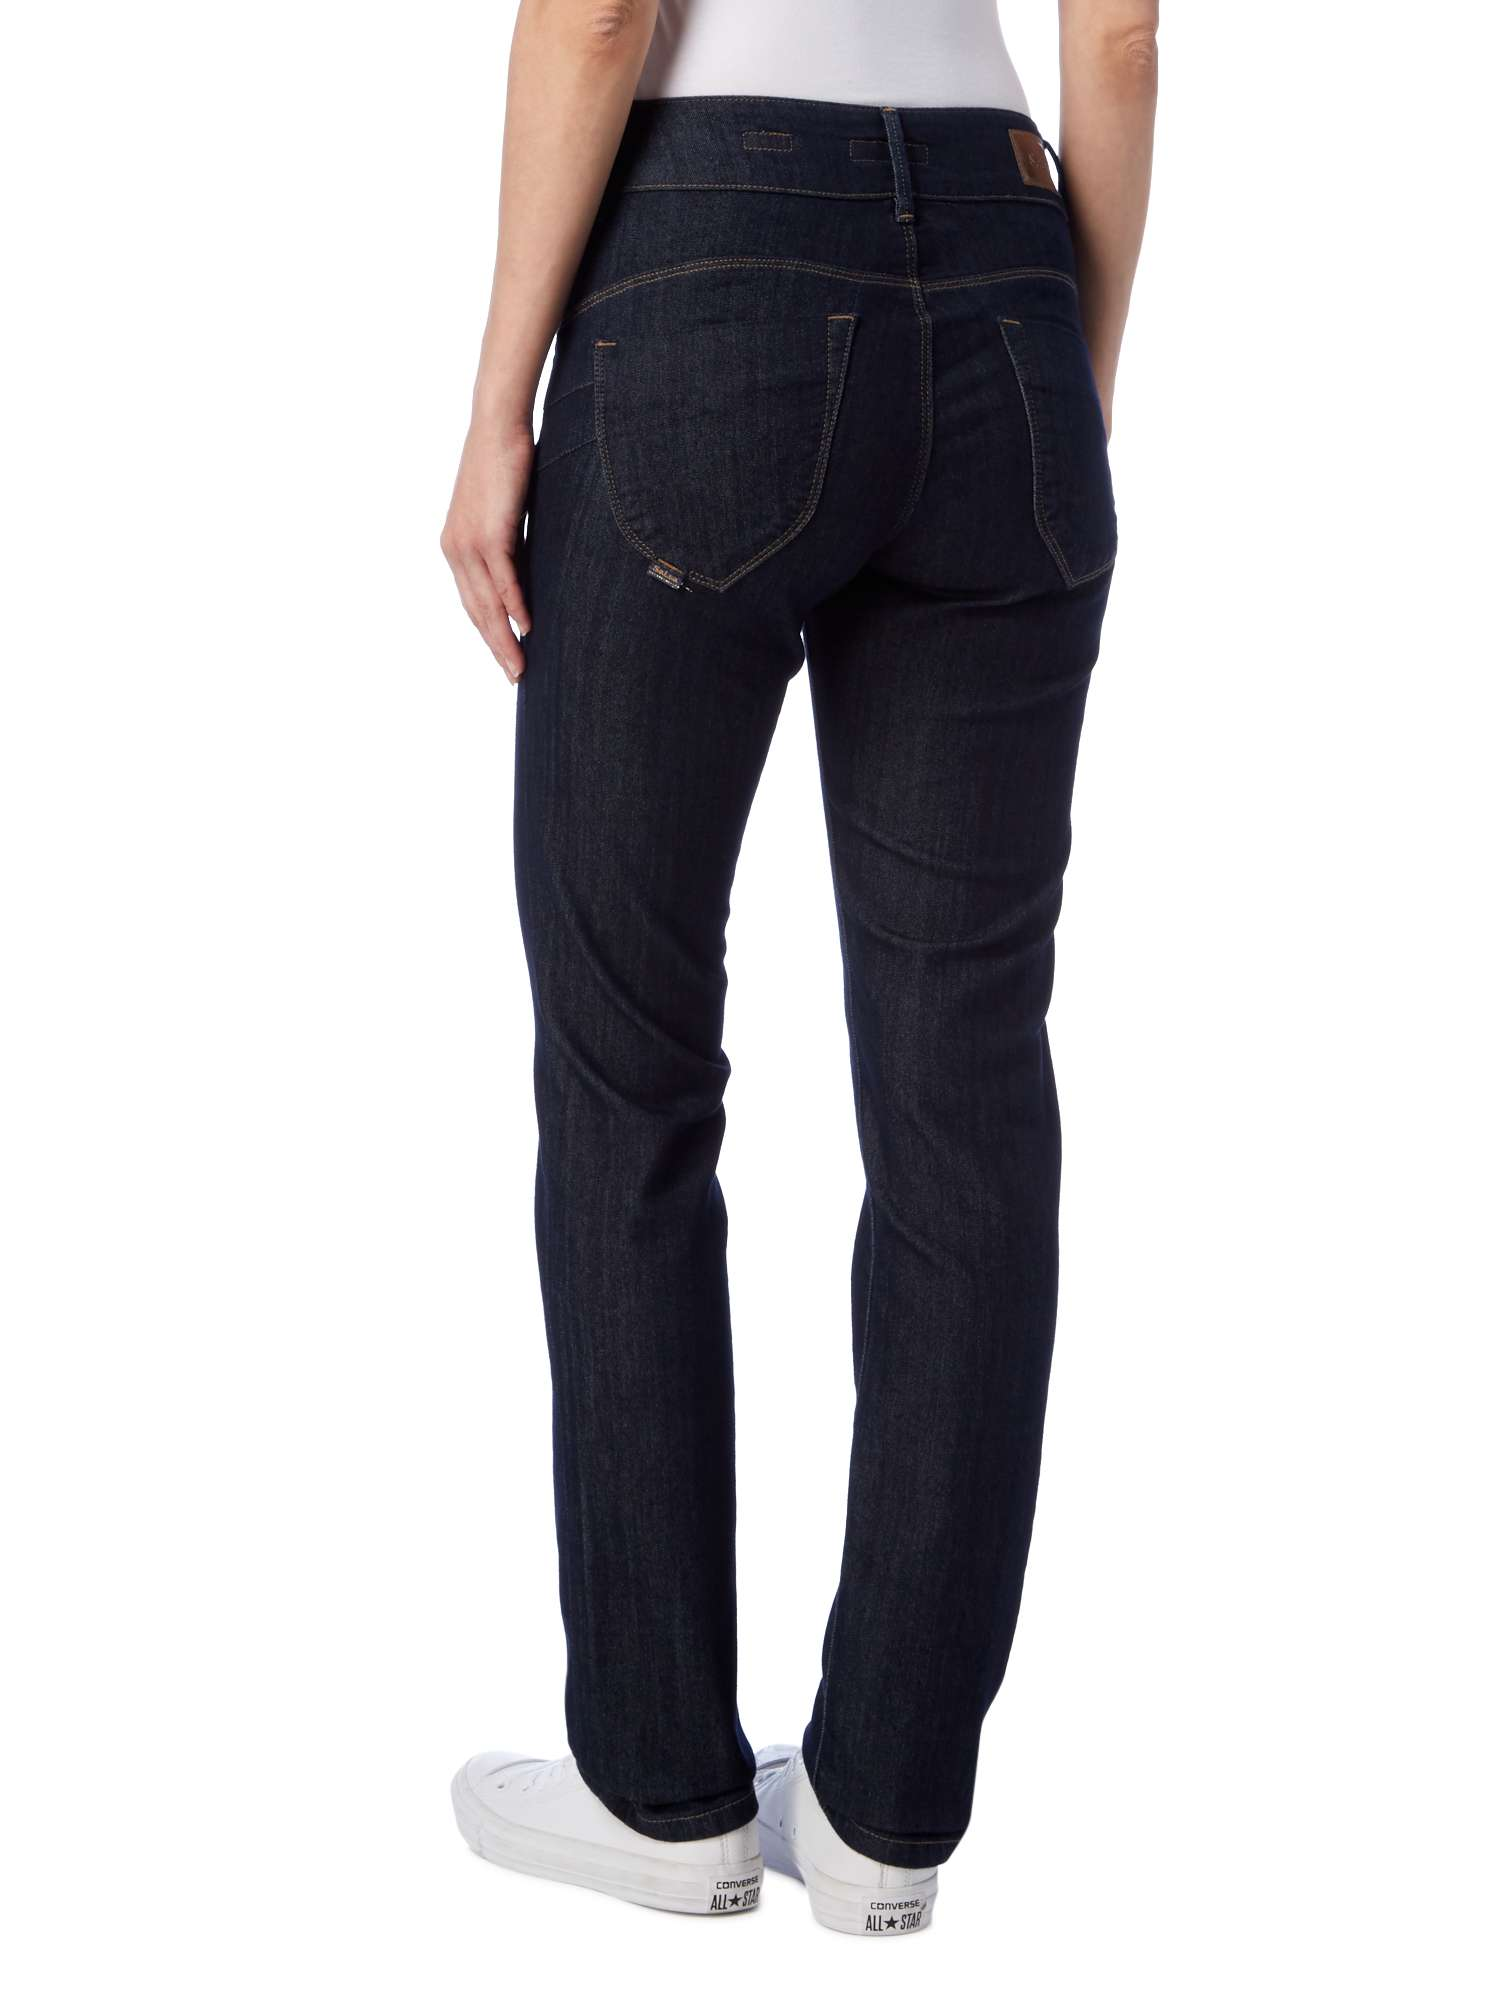 Jean Slim Salsa Sculpting In Push Secret axwAnCAq0Y